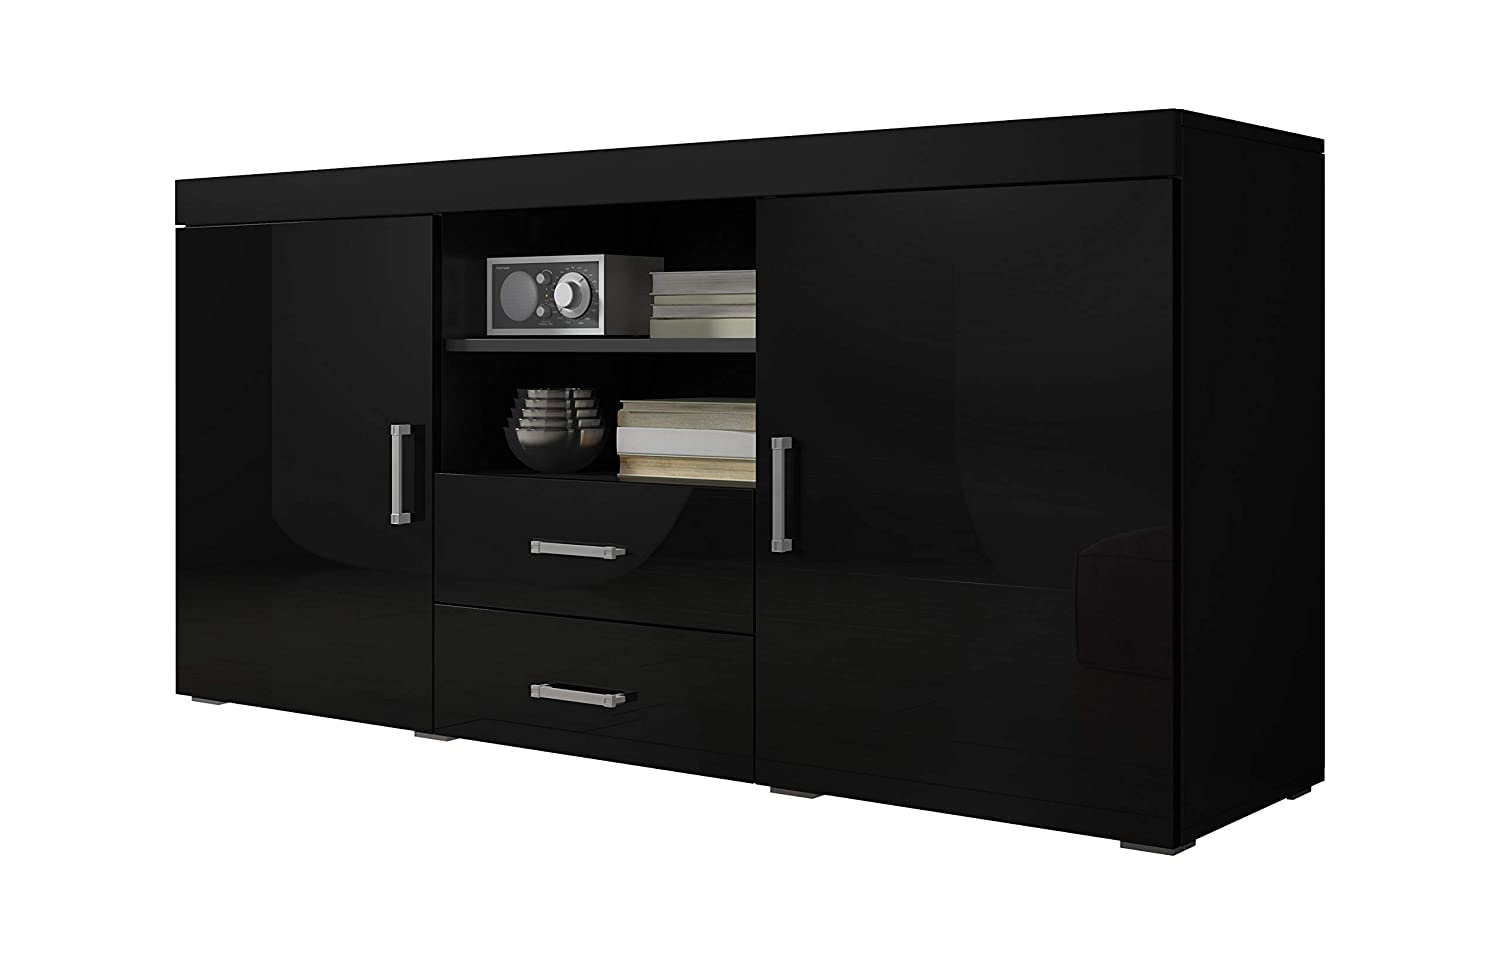 Sideboard Cupboard Buffet Mambo 164cm 2 Doors 2 Drawers Body Matte Black/Front Gloss Black E-Com International B.V.